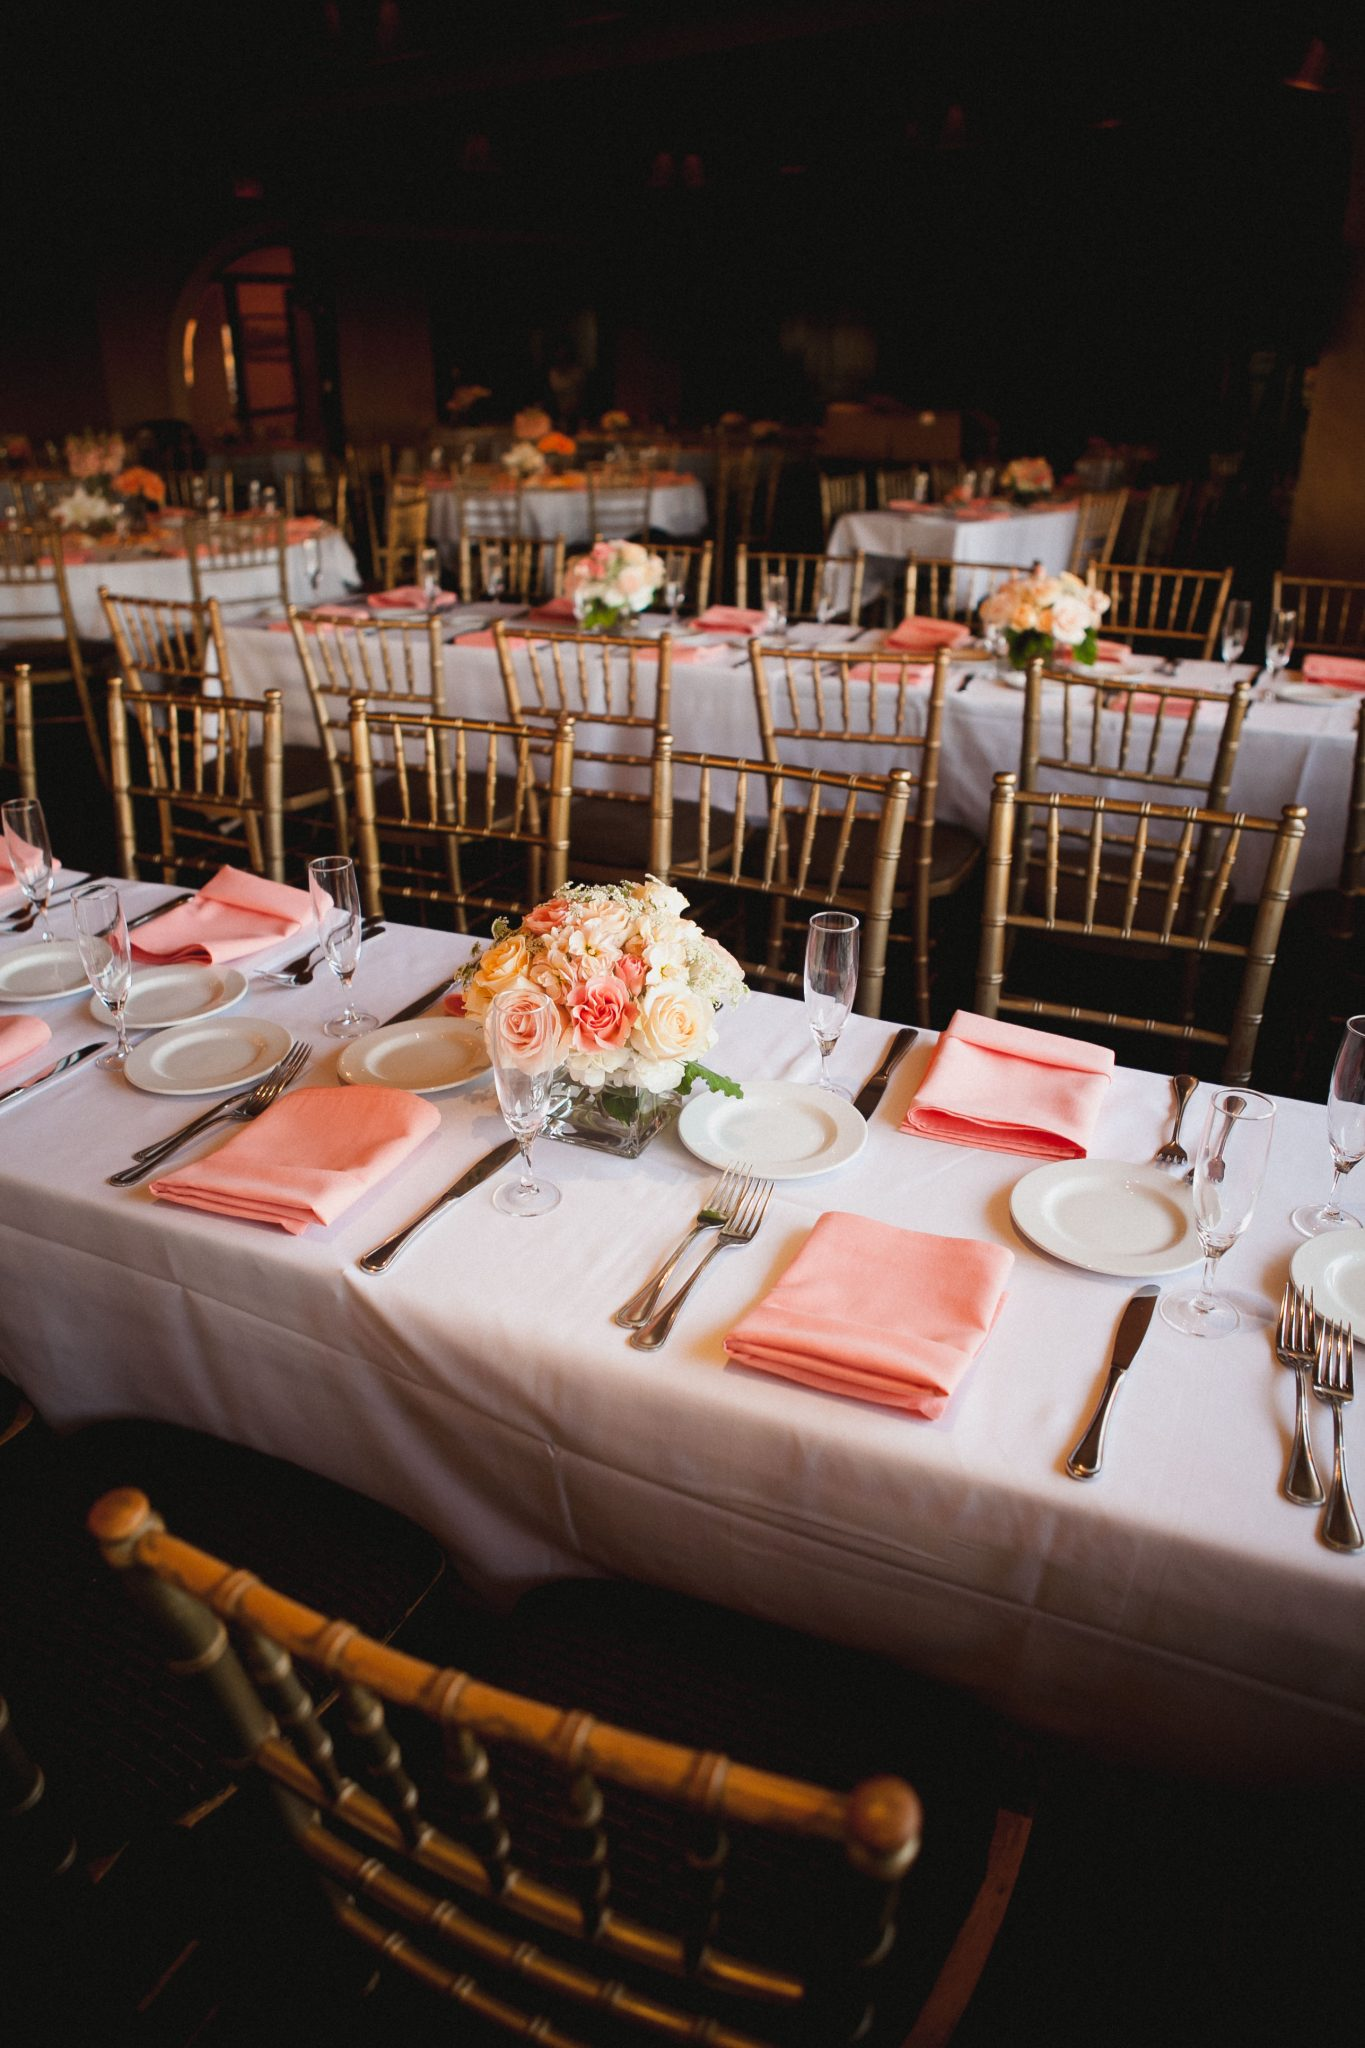 Pink cloth napkins as part of the wedding reception decorations